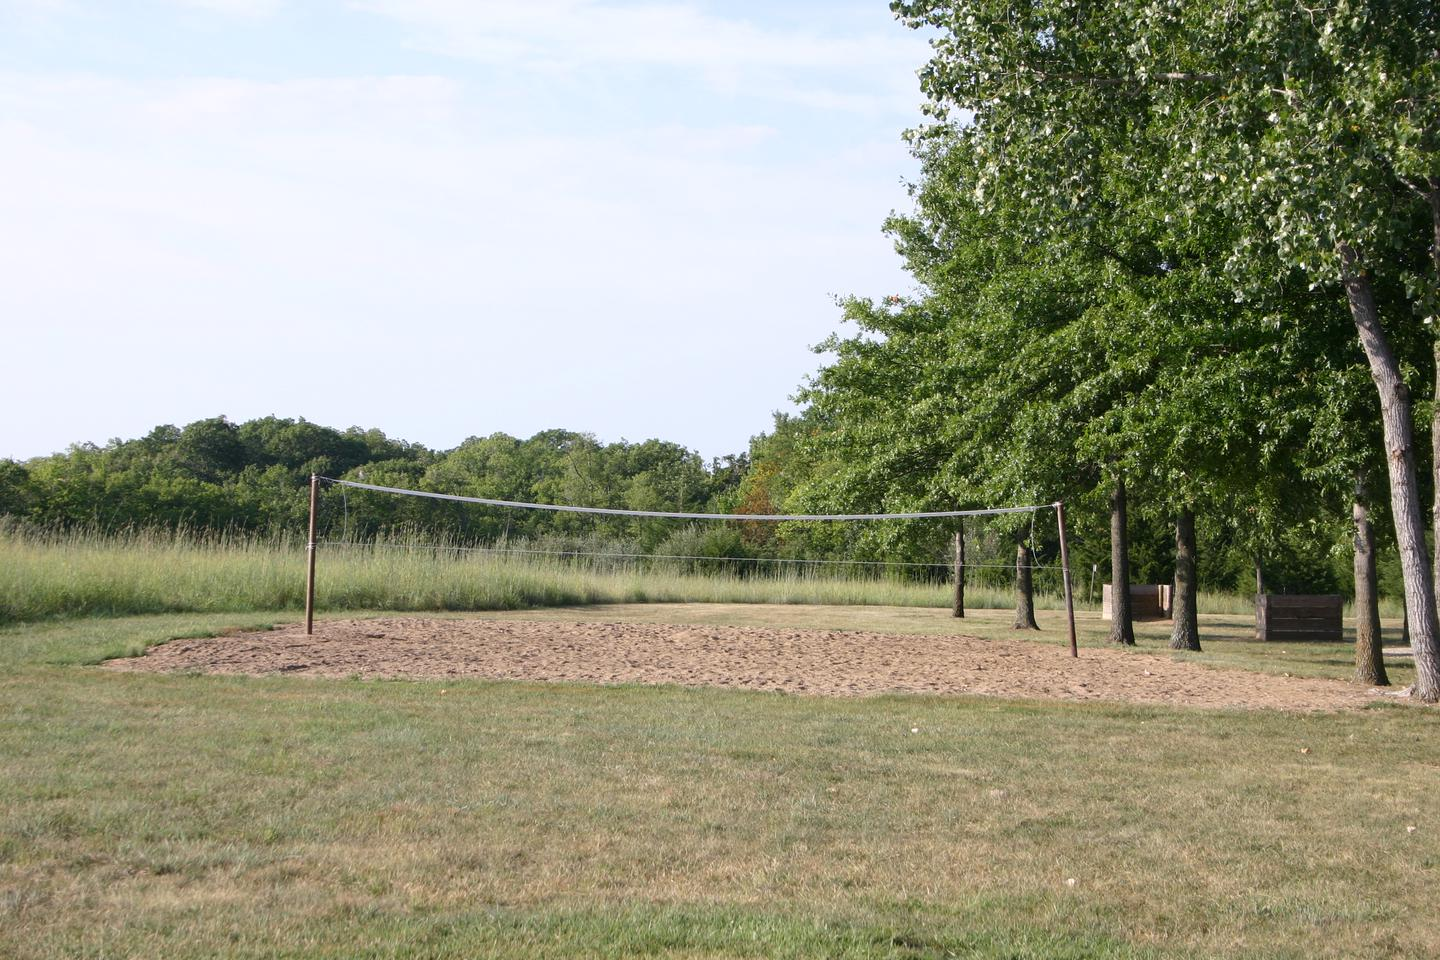 Bloomington West Park Campground sand volleyball courta sand volleyball court is located at the west end of the camping area near the shelter